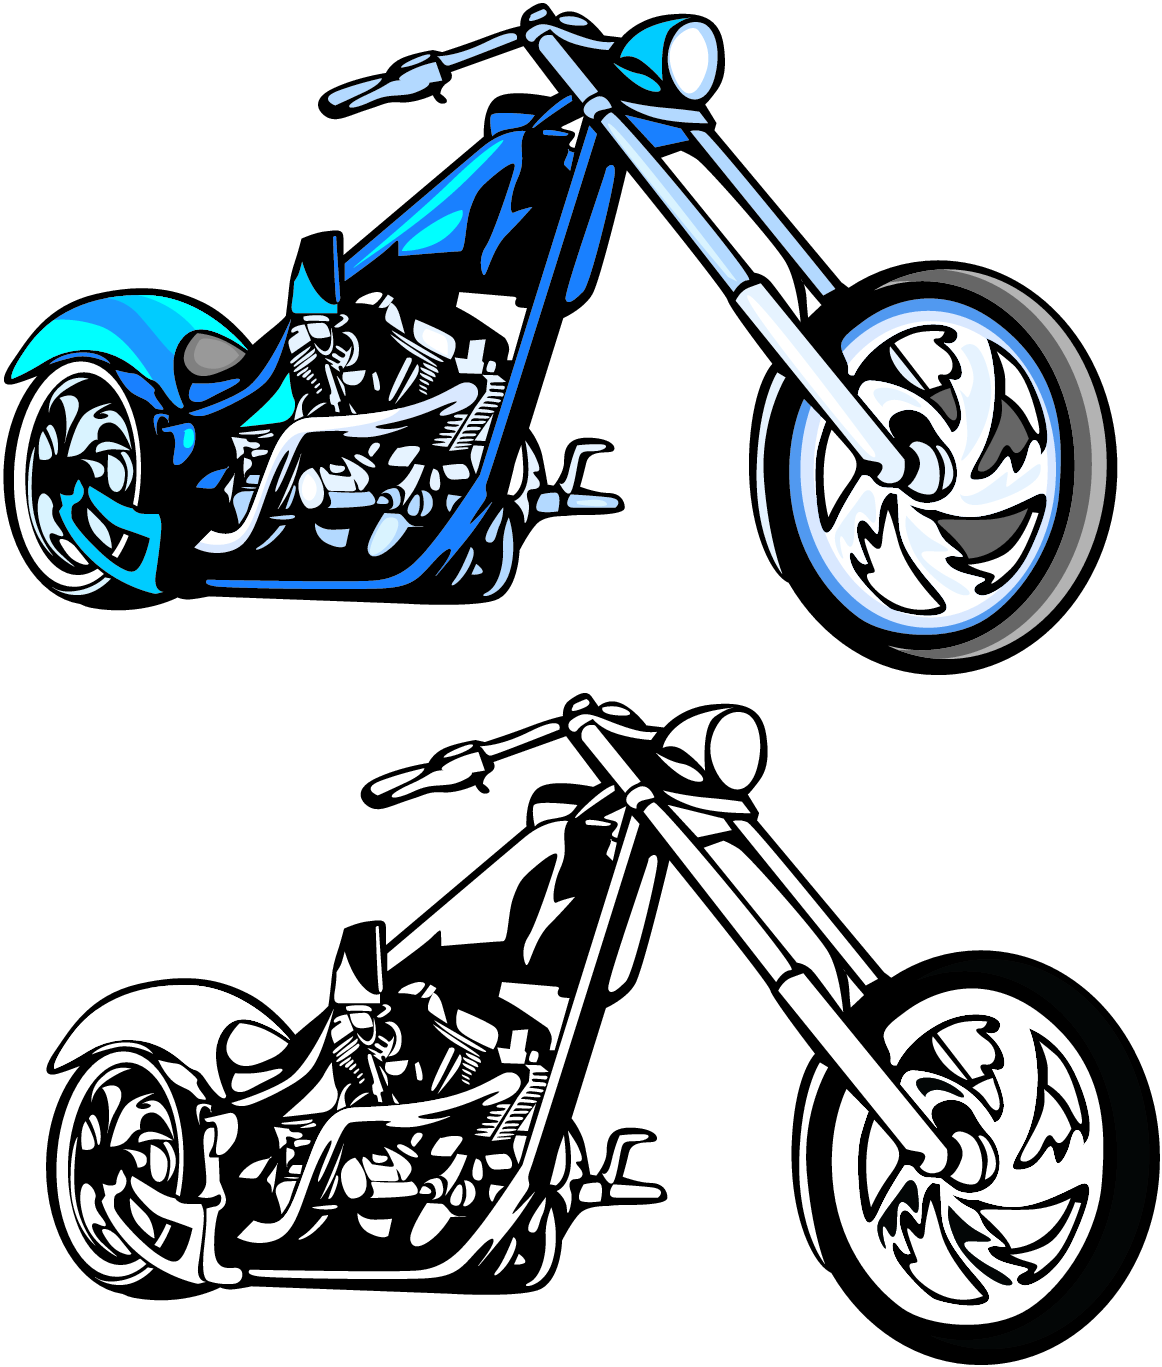 Motorcycle Silhouette Clipart - Clipart Kid